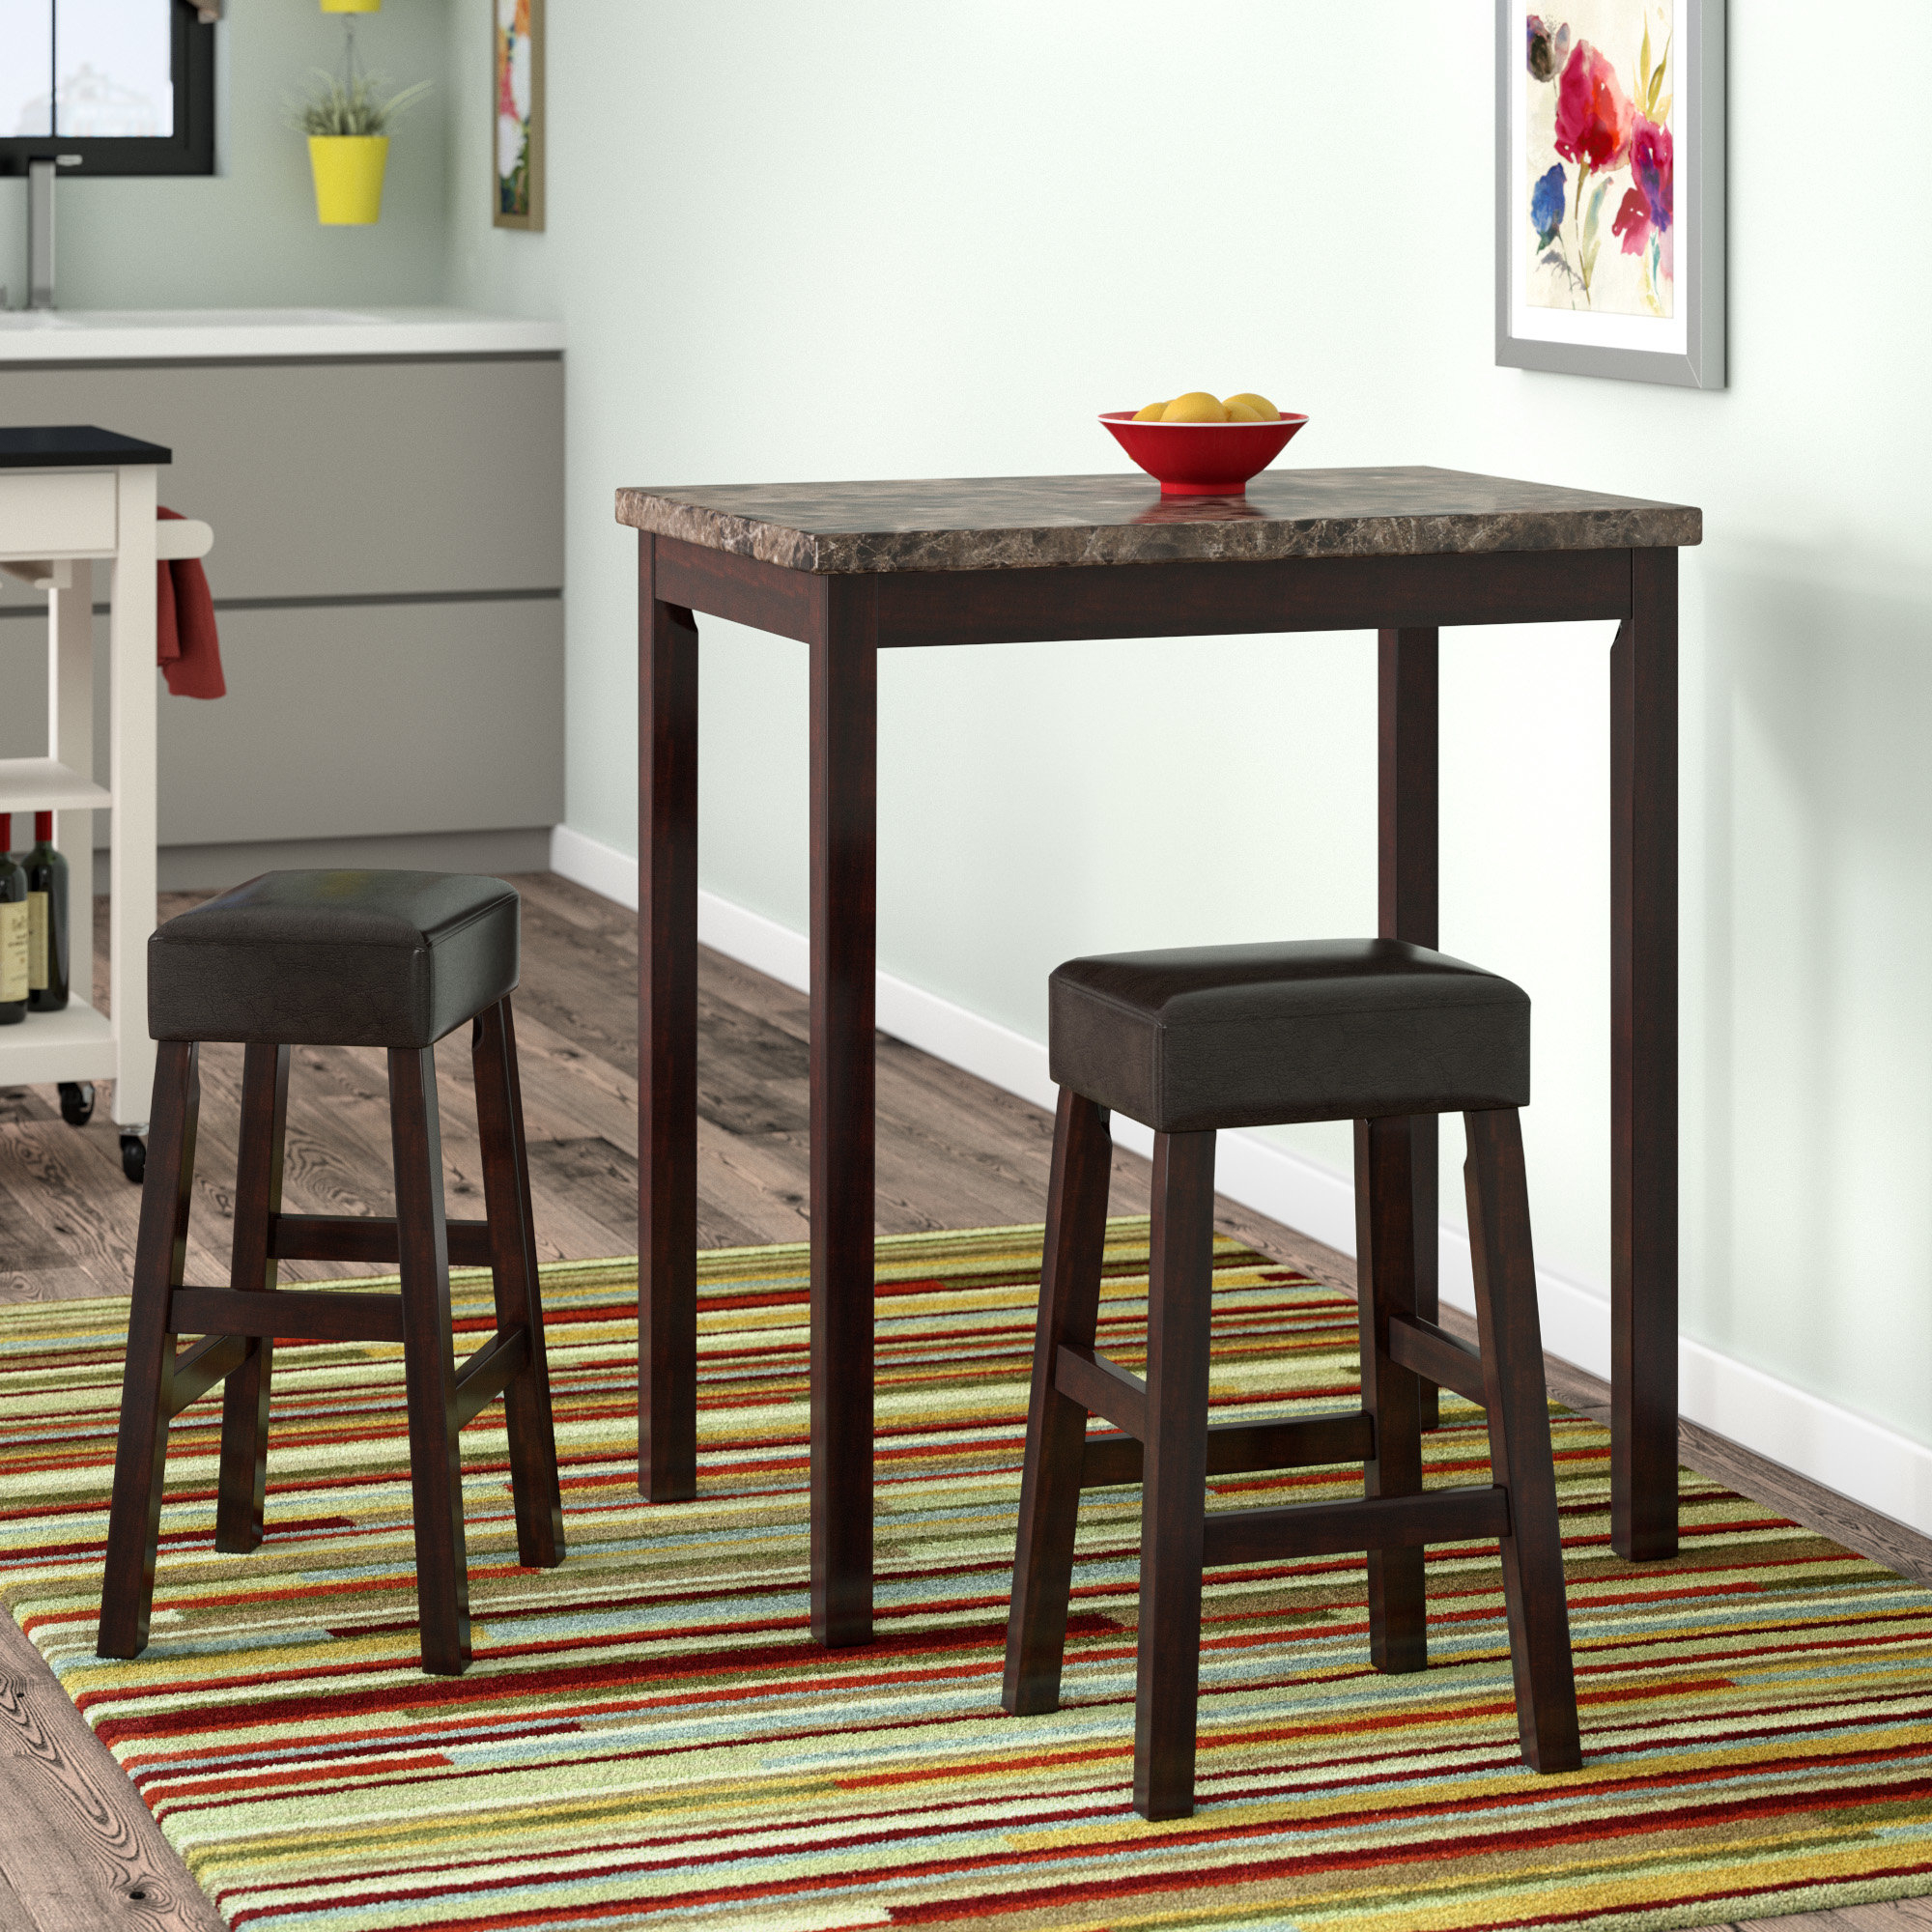 Wayfair With Regard To Askern 3 Piece Counter Height Dining Sets (Set Of 3) (View 20 of 25)